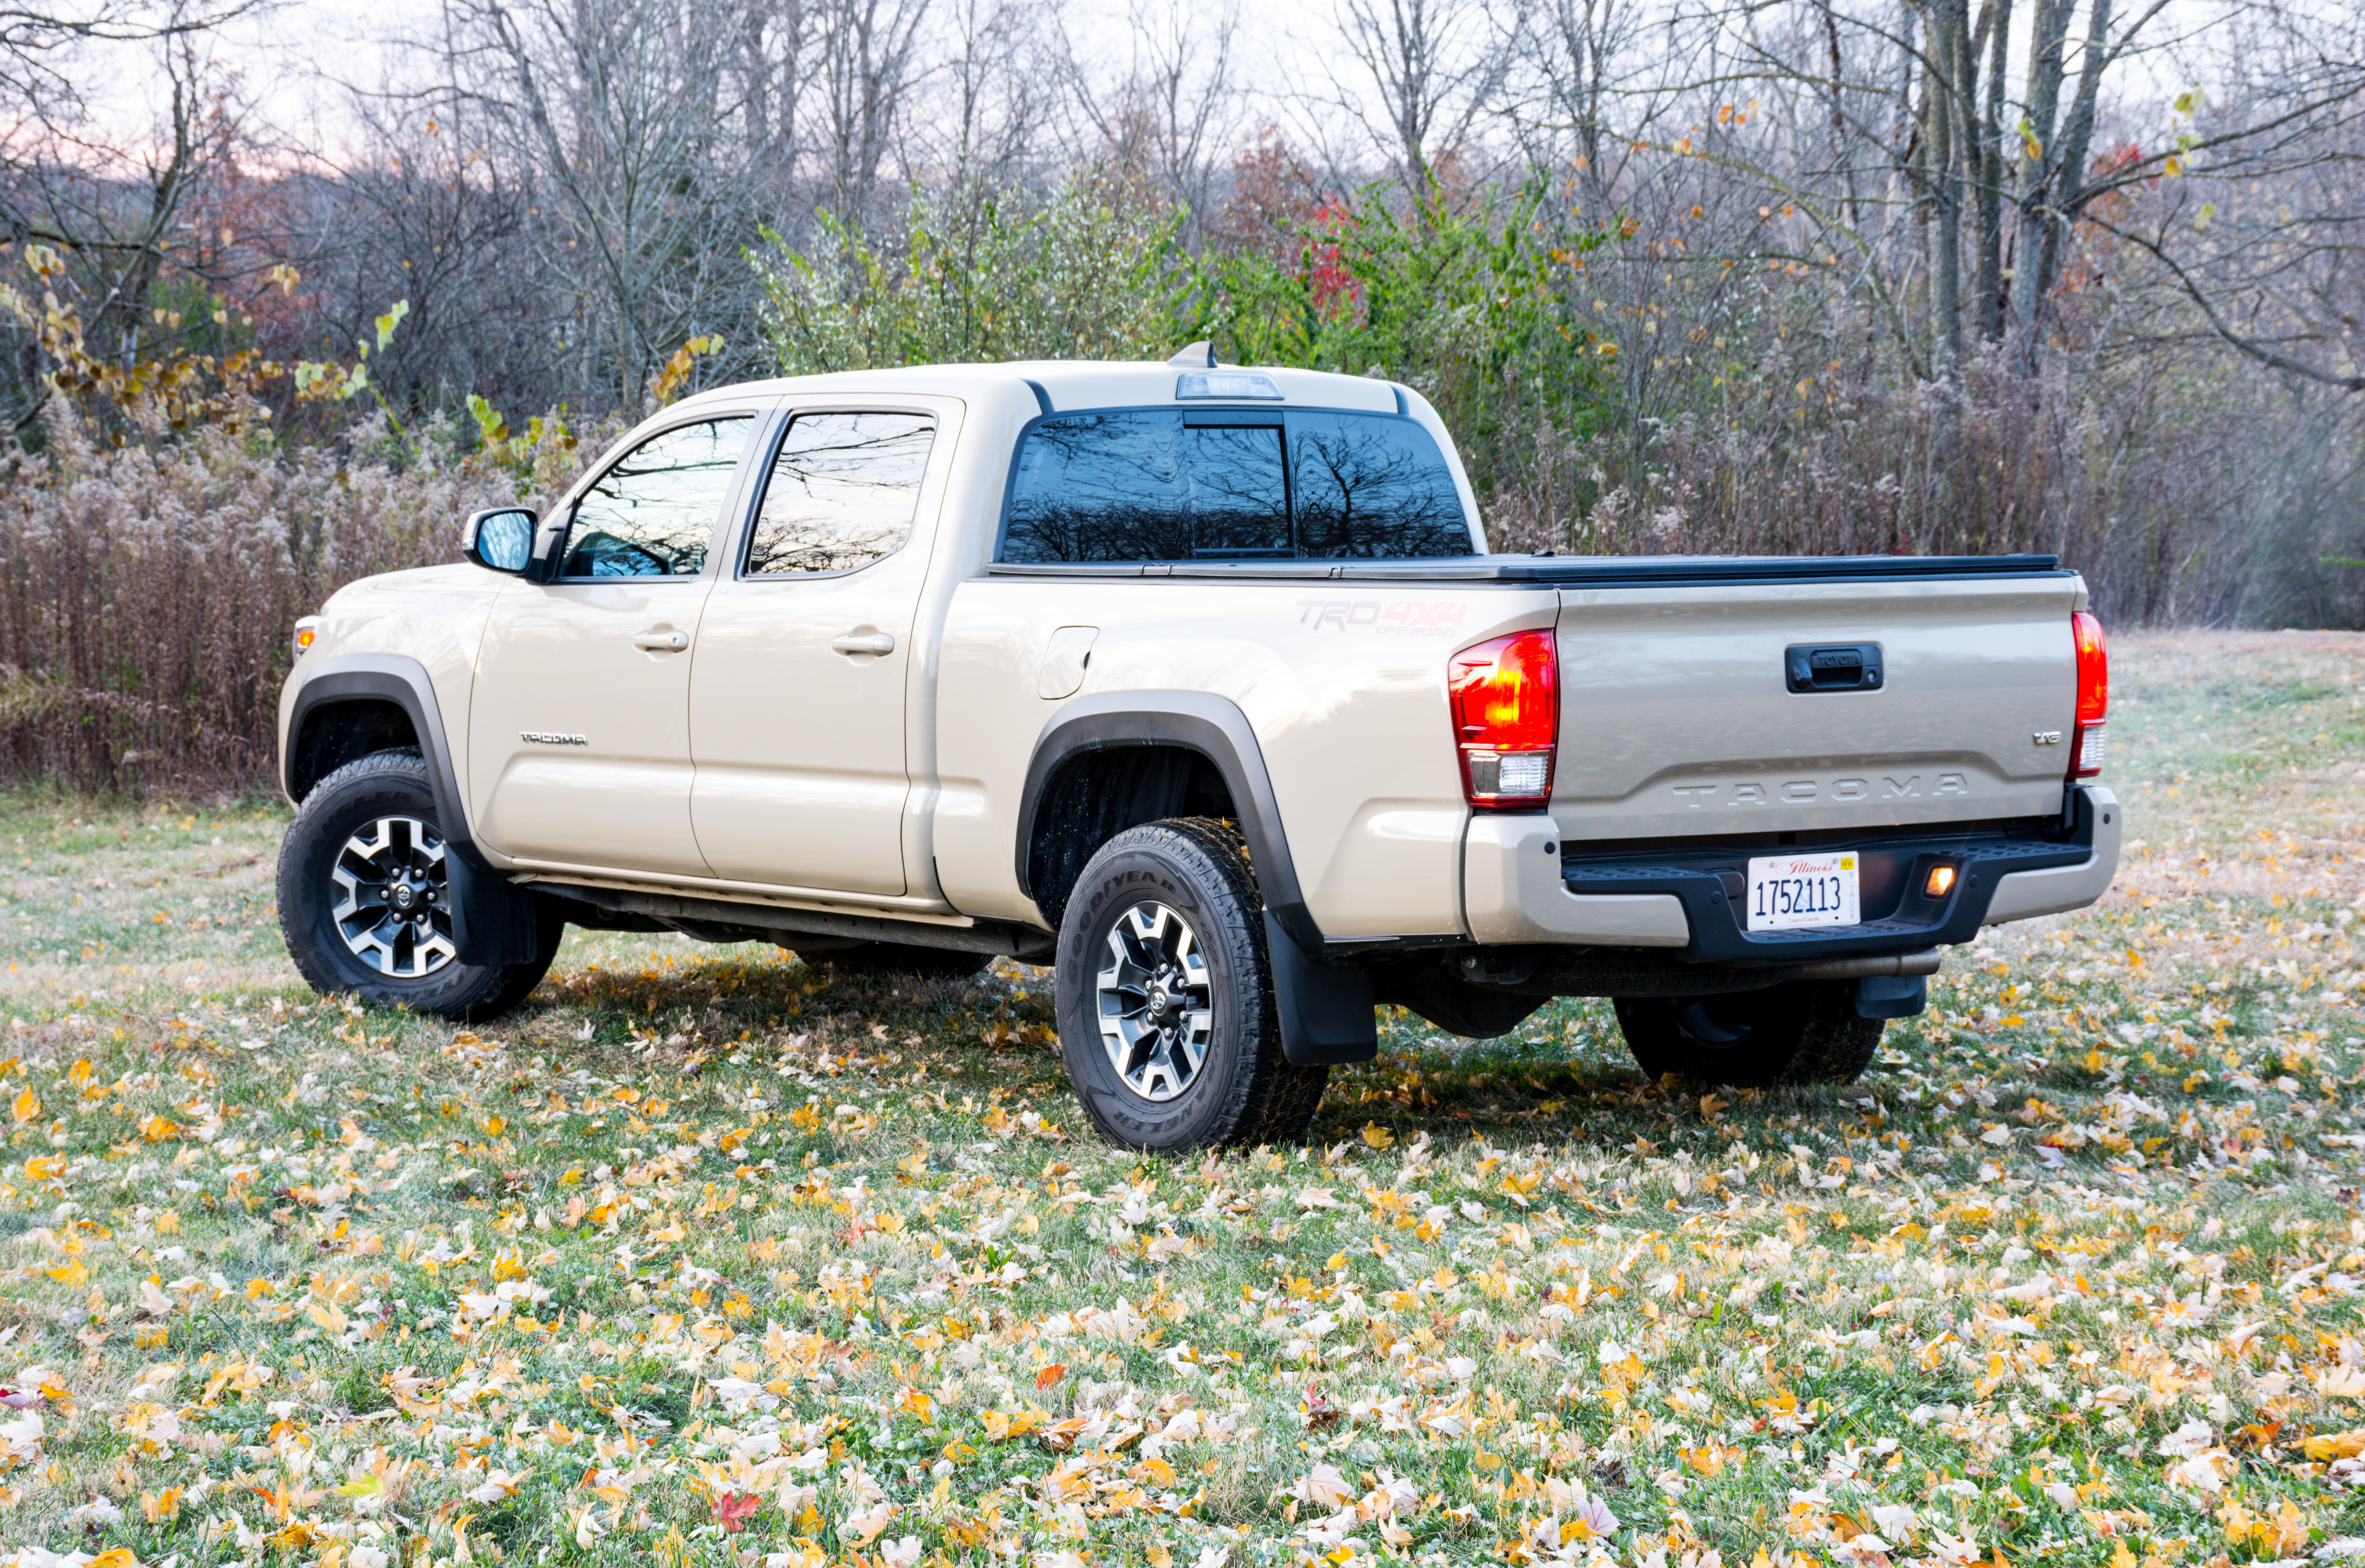 2017 Toyota Tacoma TRD Off-Road Review - Conquering the ...